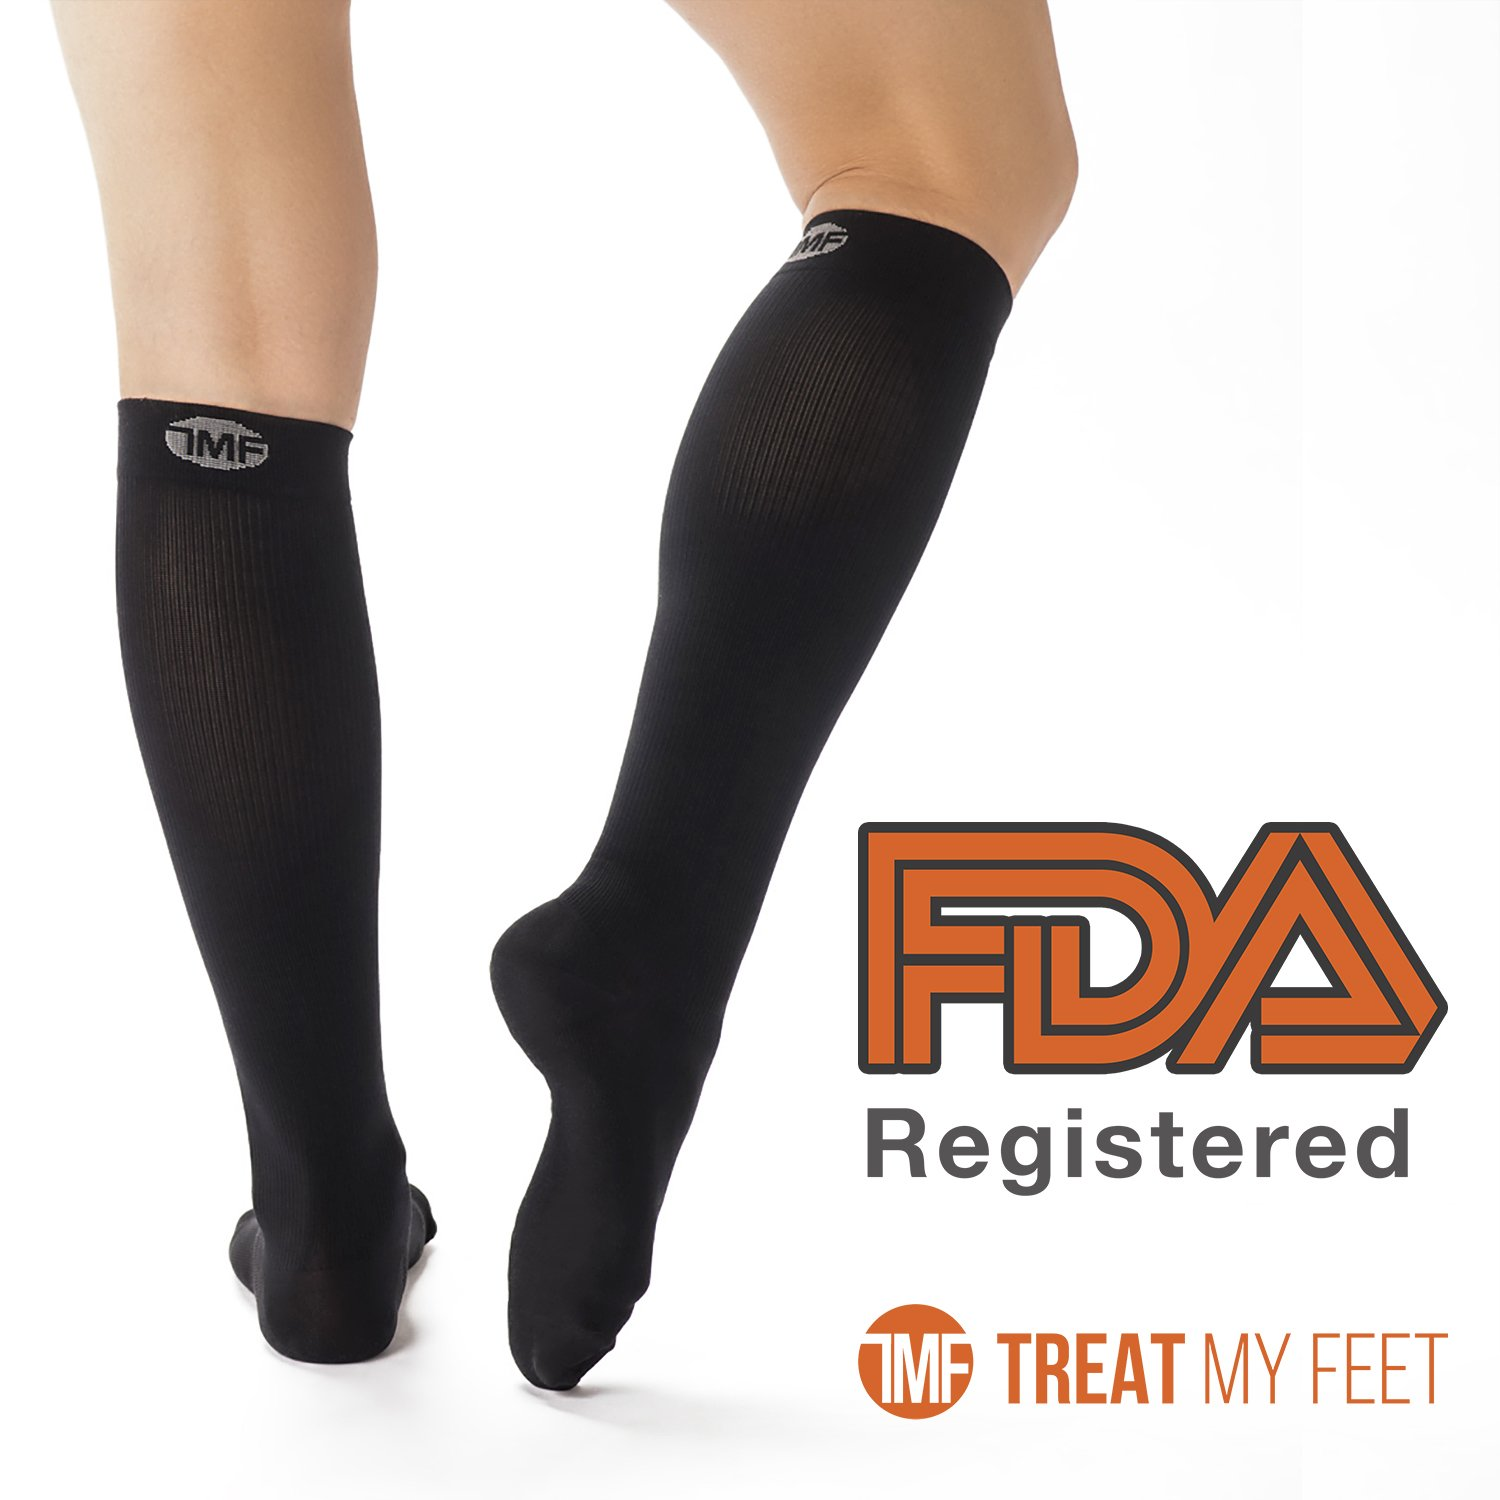 f01cdb481 Compression Socks for Men & Women - Knee-high compression stockings relieve  calf, leg & foot pain - Graduated to boost circulation & reduce edema  swelling ...